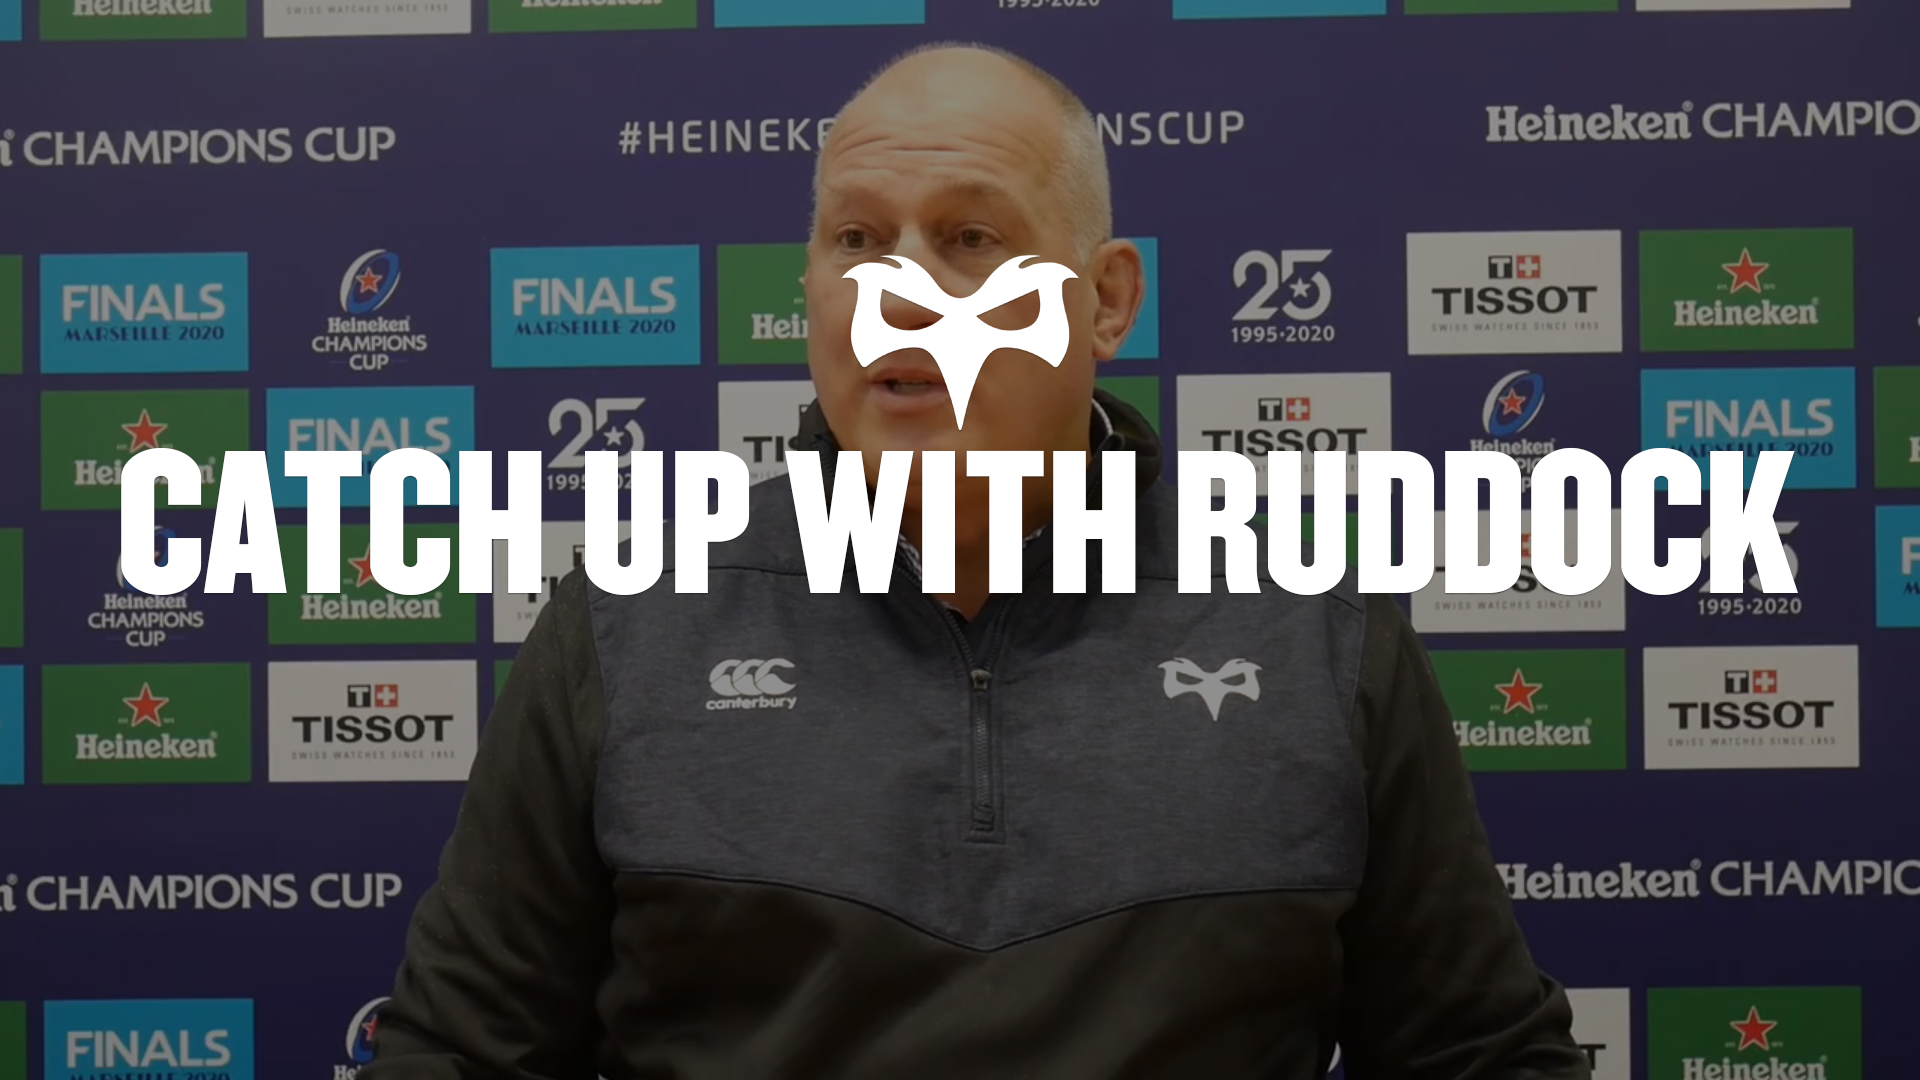 Catch Up With Ruddock 7th Jan